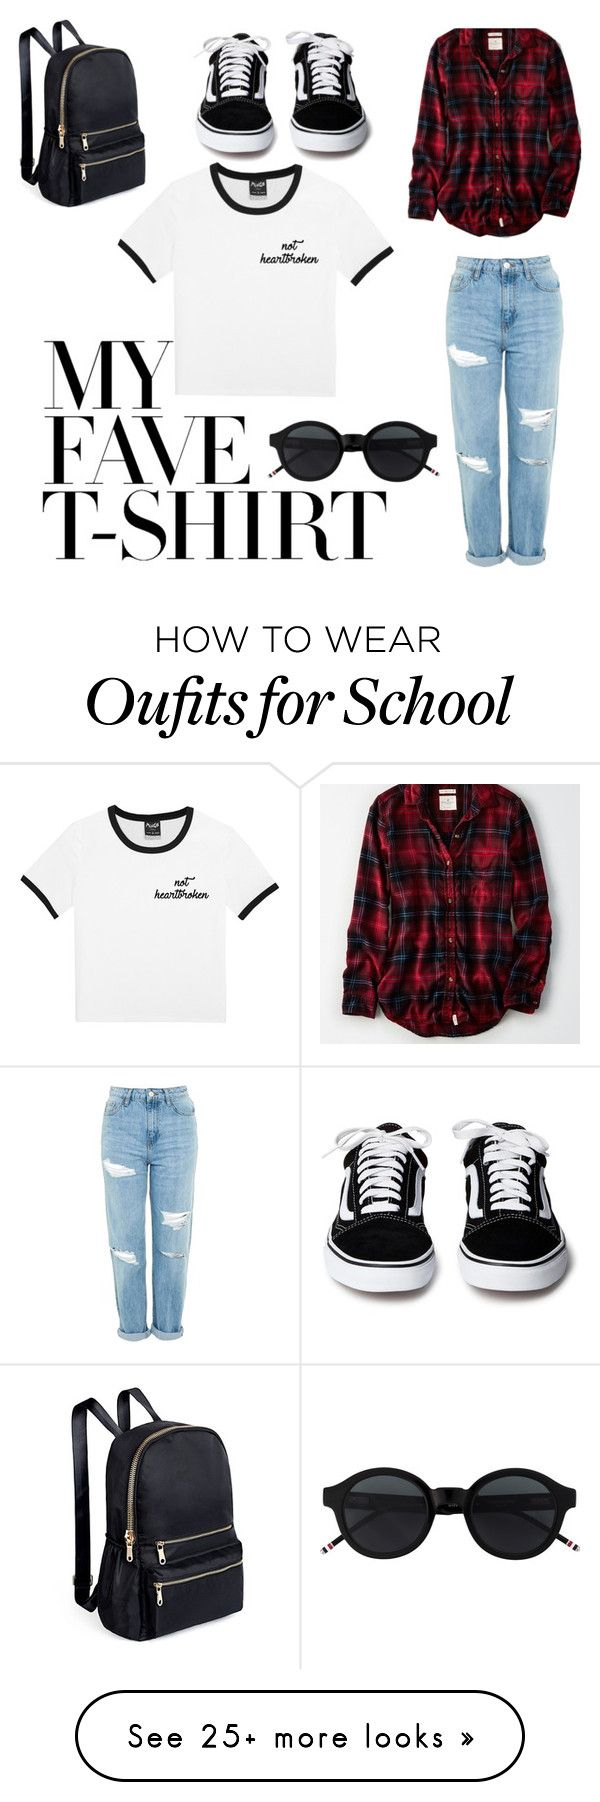 """""""My fav t-shirt"""" by beabooz on Polyvore featuring Topshop, American Eagle Outfitters and MyFaveTshirt"""